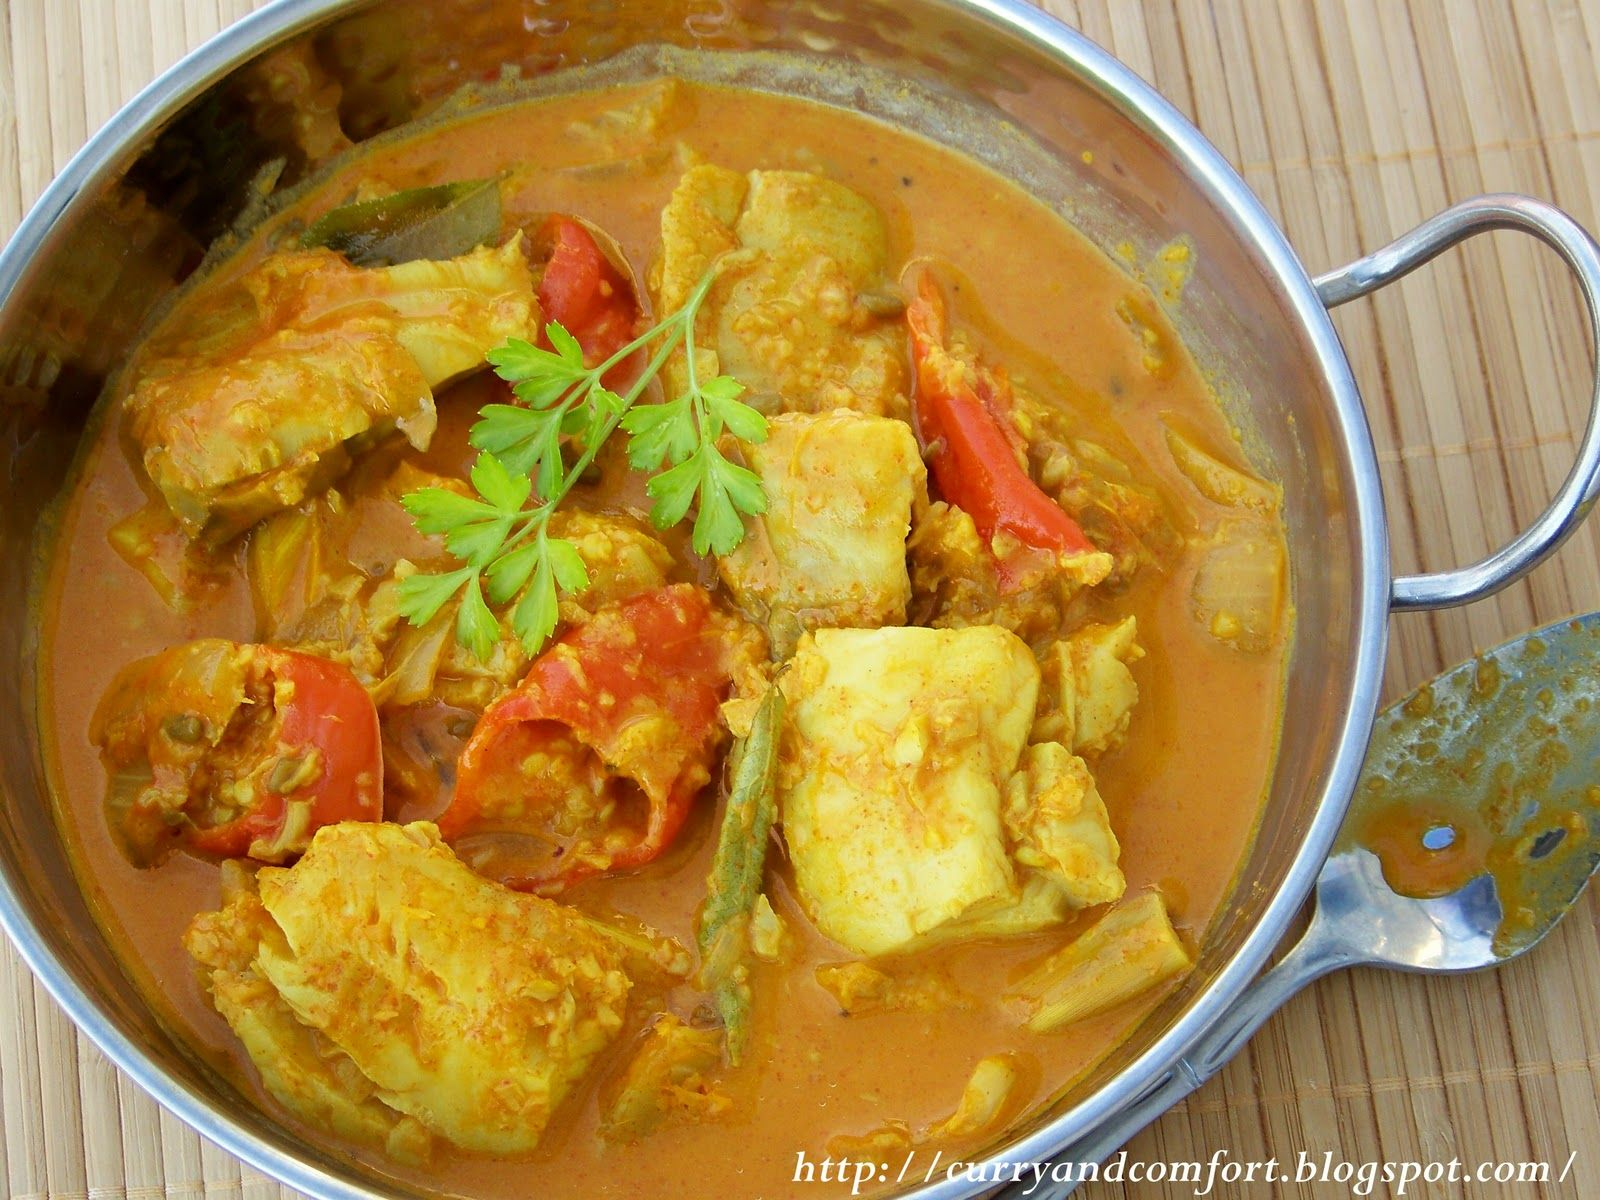 Curry and Comfort: Fish Curry with Coconut Milk - Sri ...